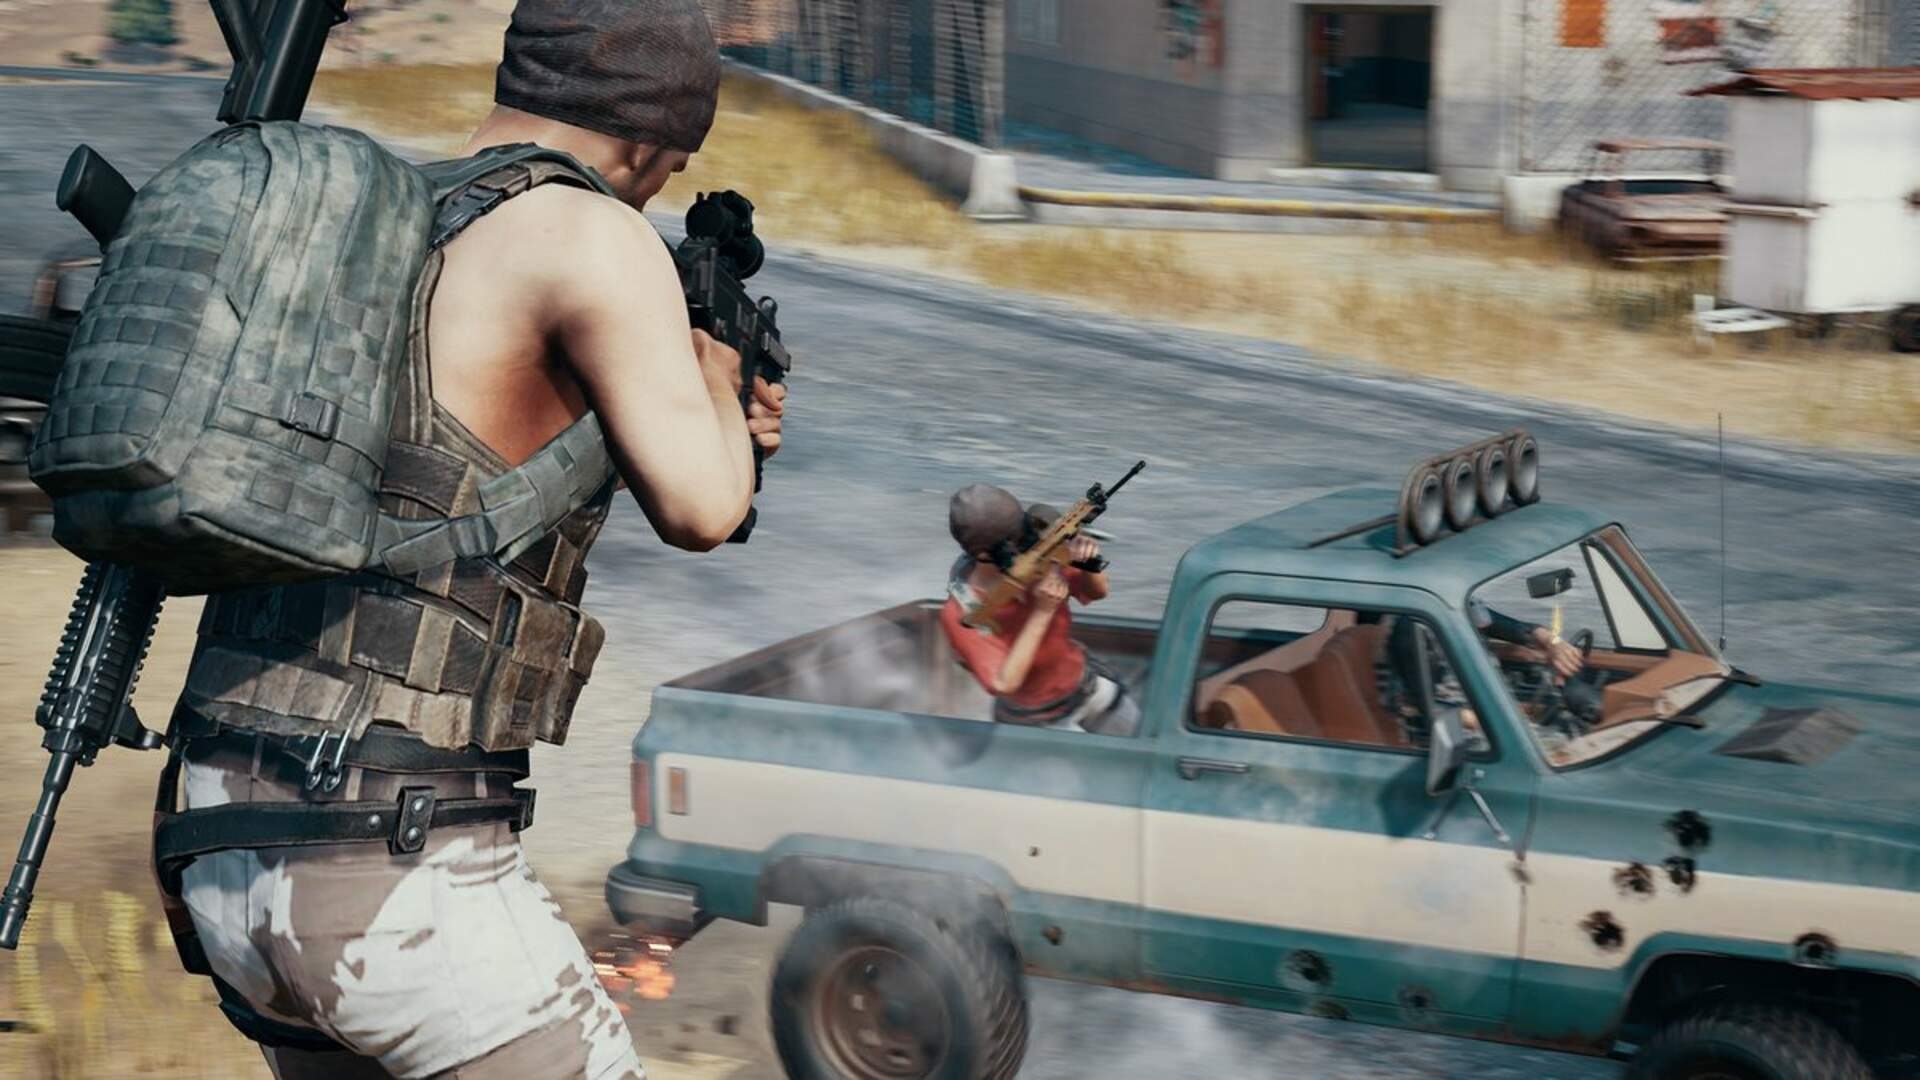 PUBG Is Getting Cross-Play on Xbox One and PS4, but Not PC